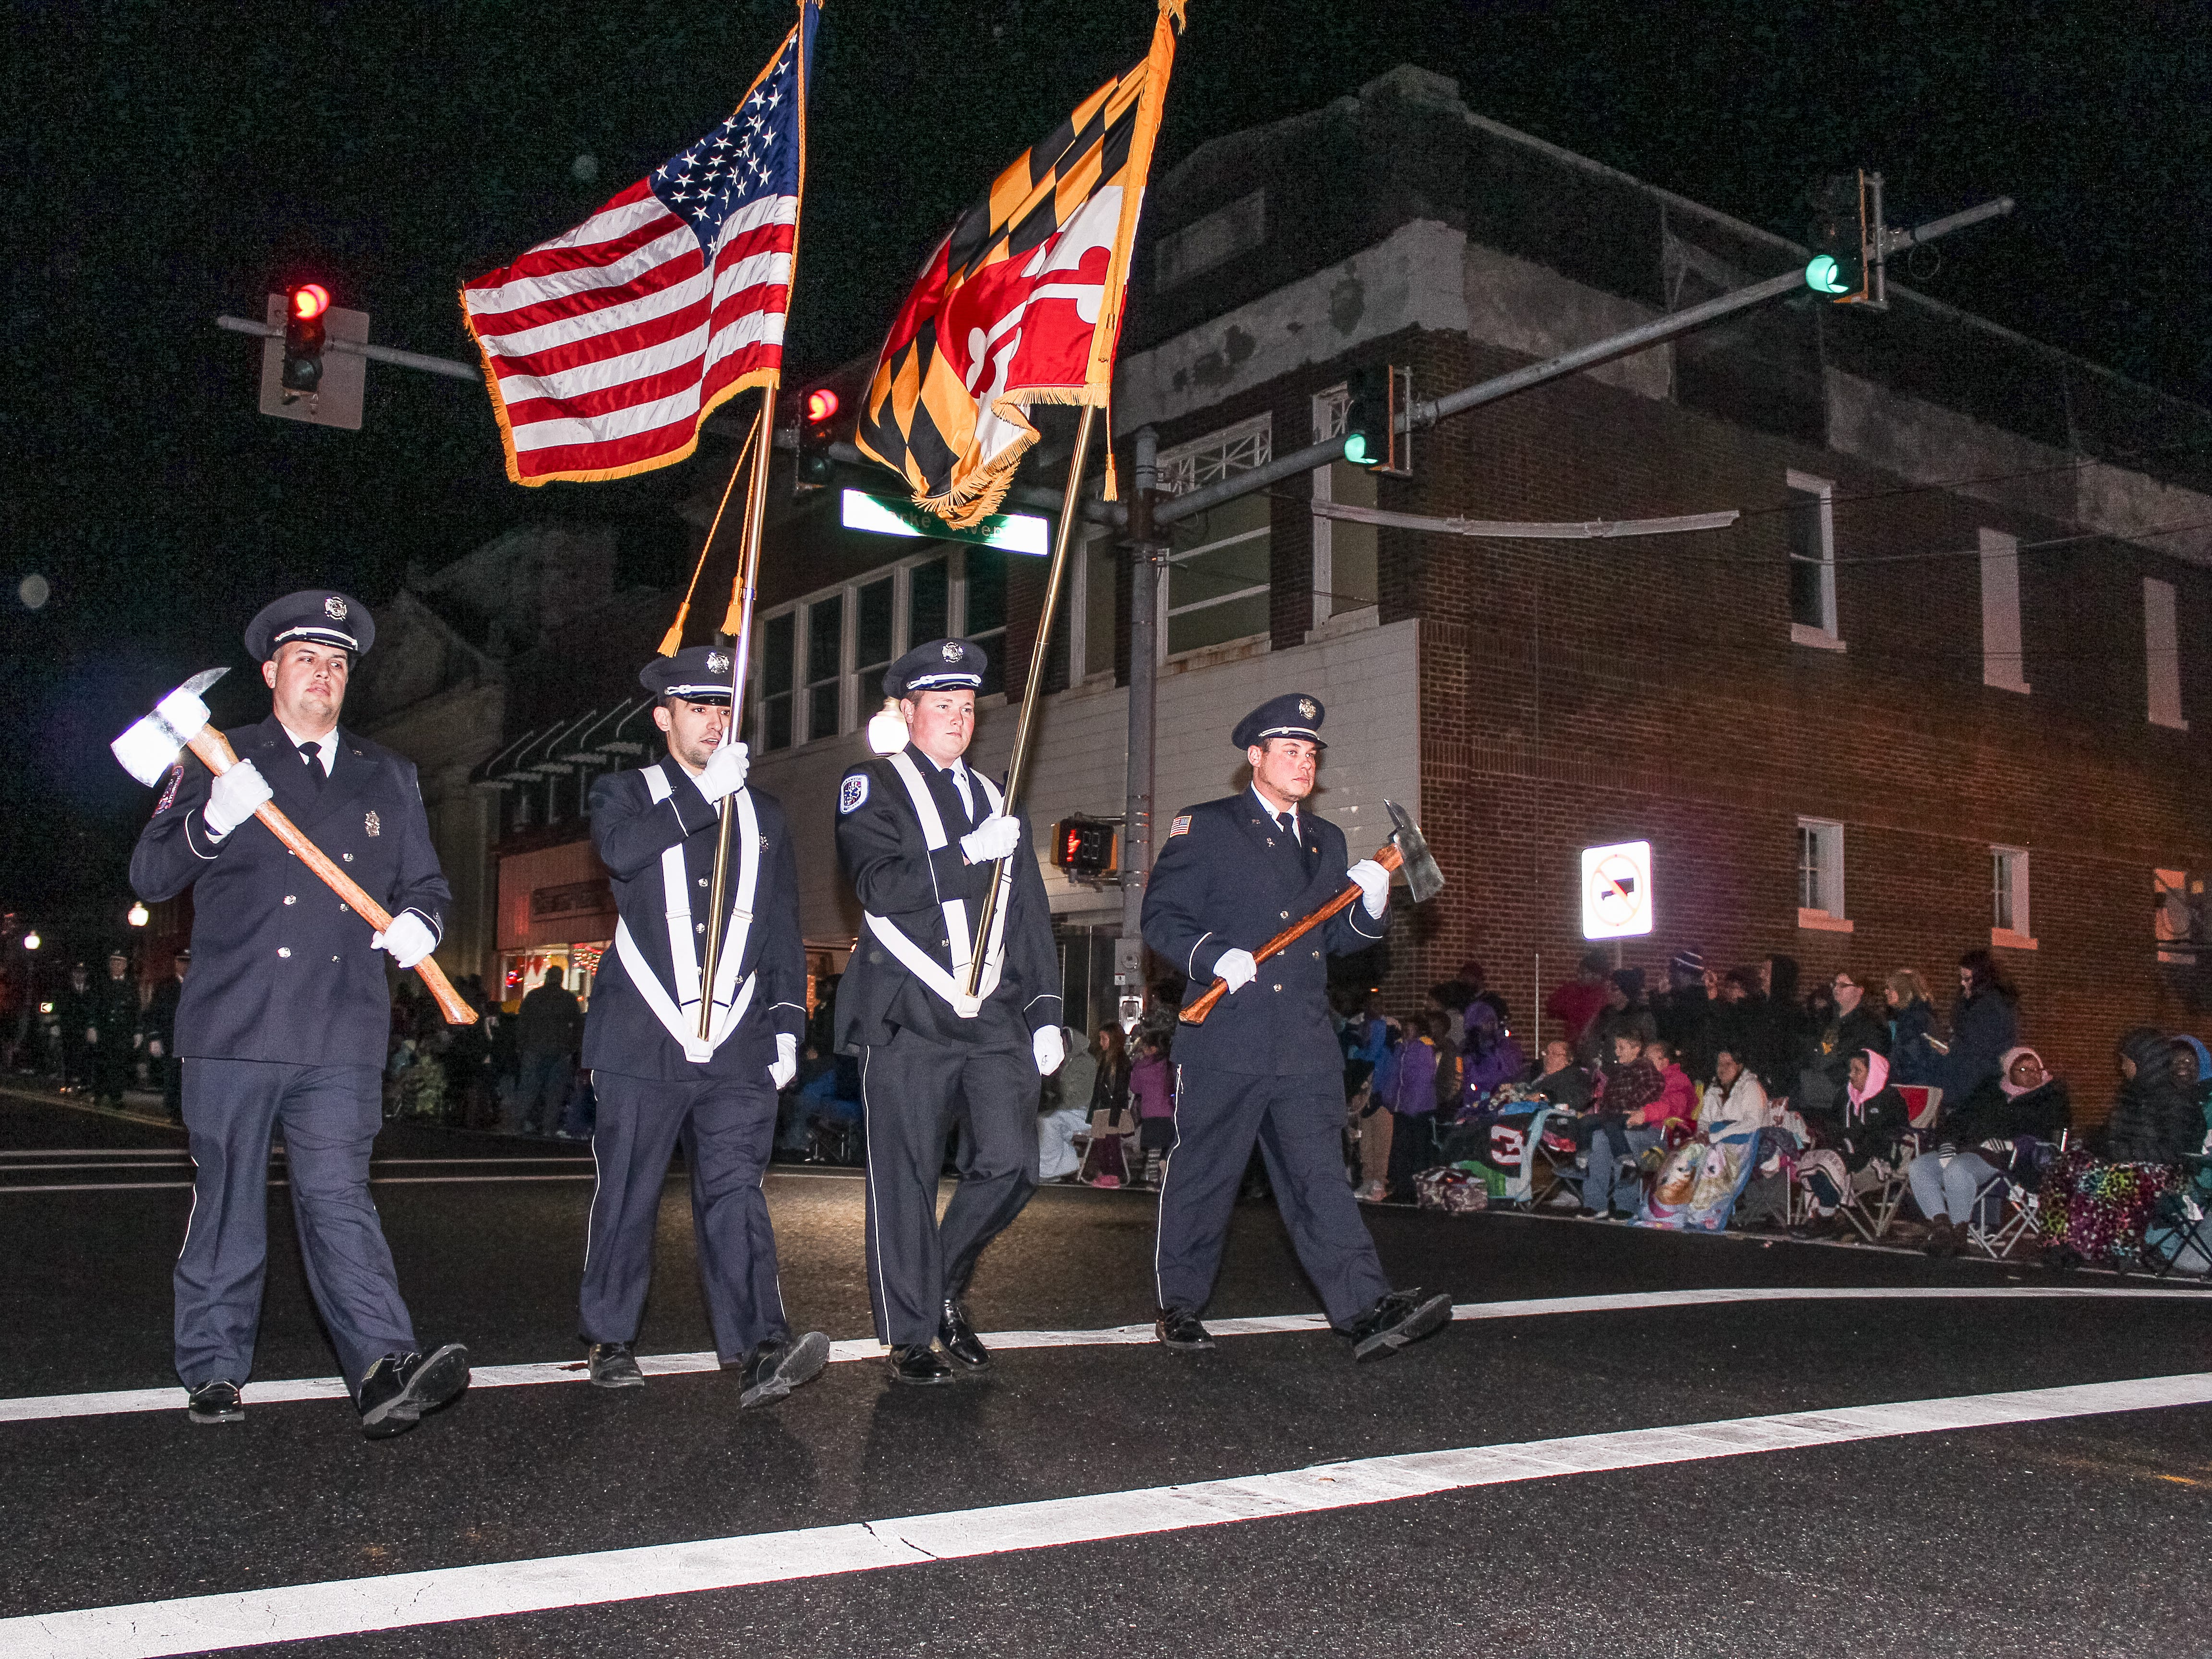 Pocomoke City Fire Company color guard takes part in the town's Christmas parade on Nov. 26, 2018.